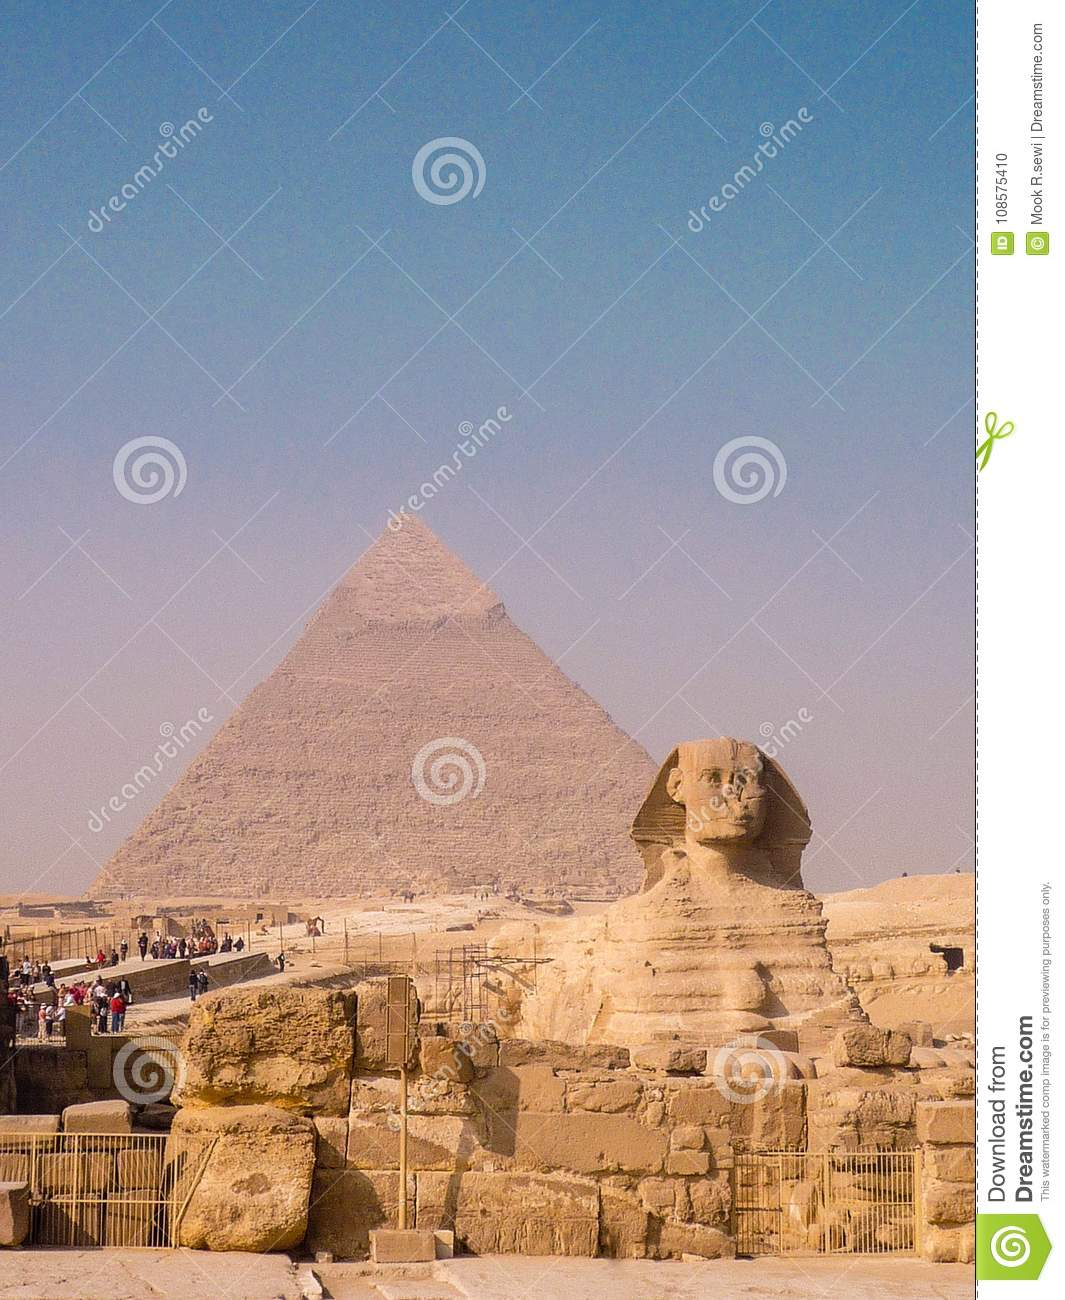 wonders of the world pyramid editorial image image of sphinx